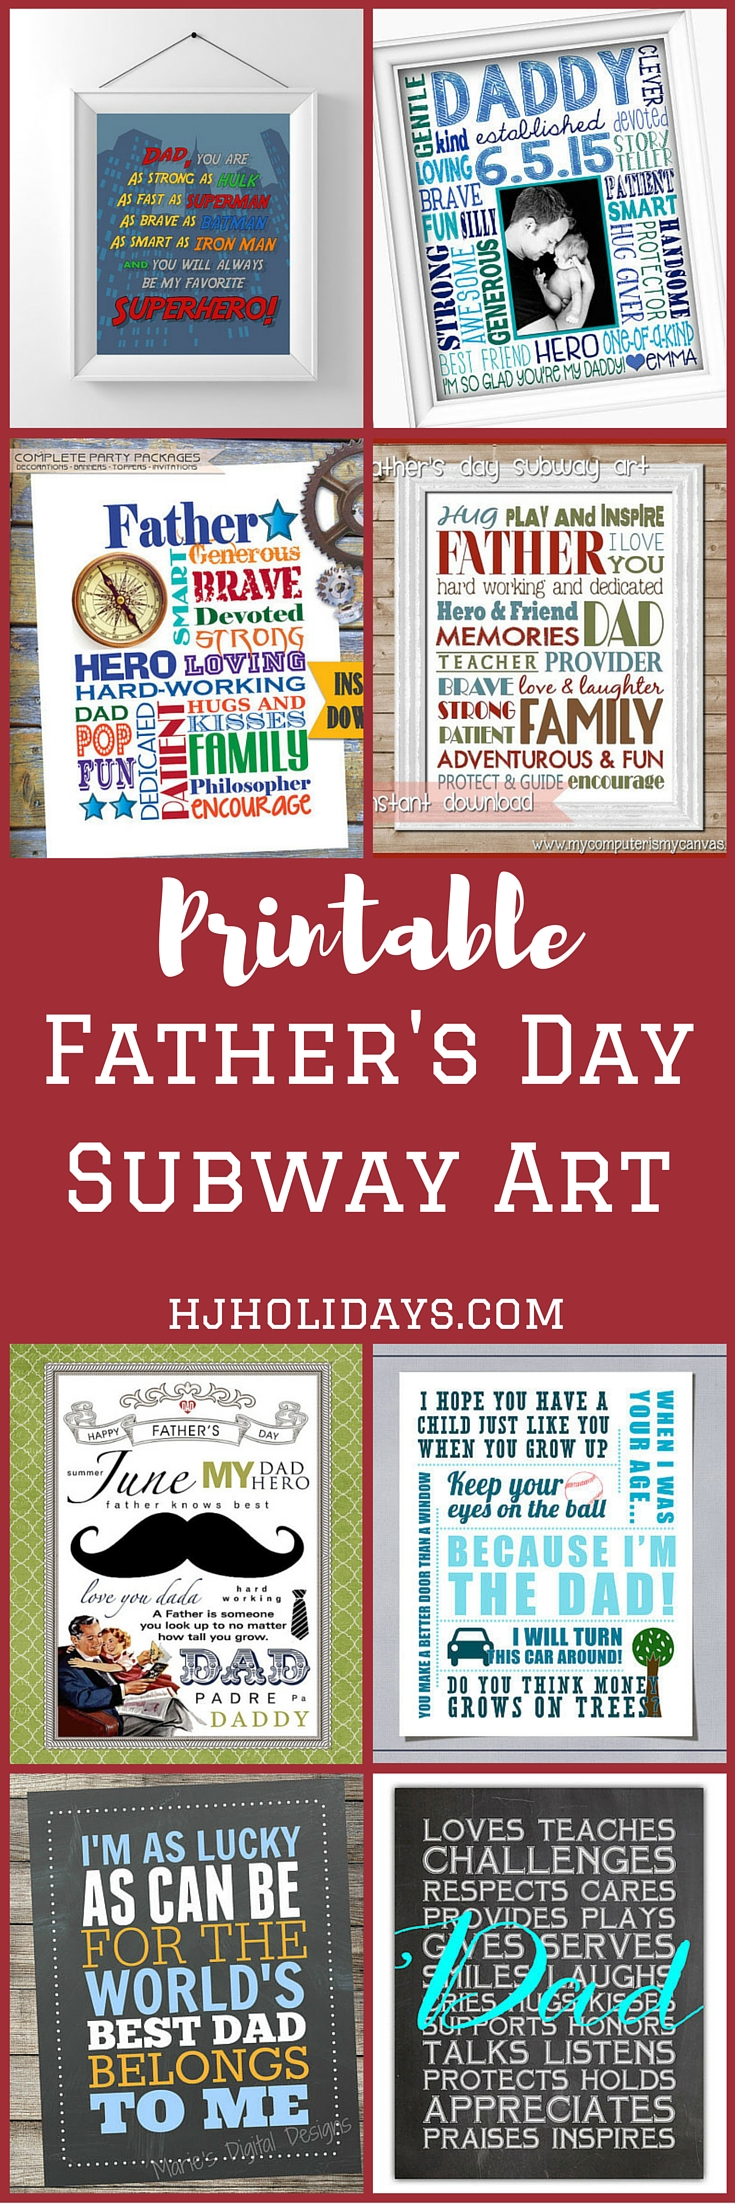 Printable Father's Day Subway Art